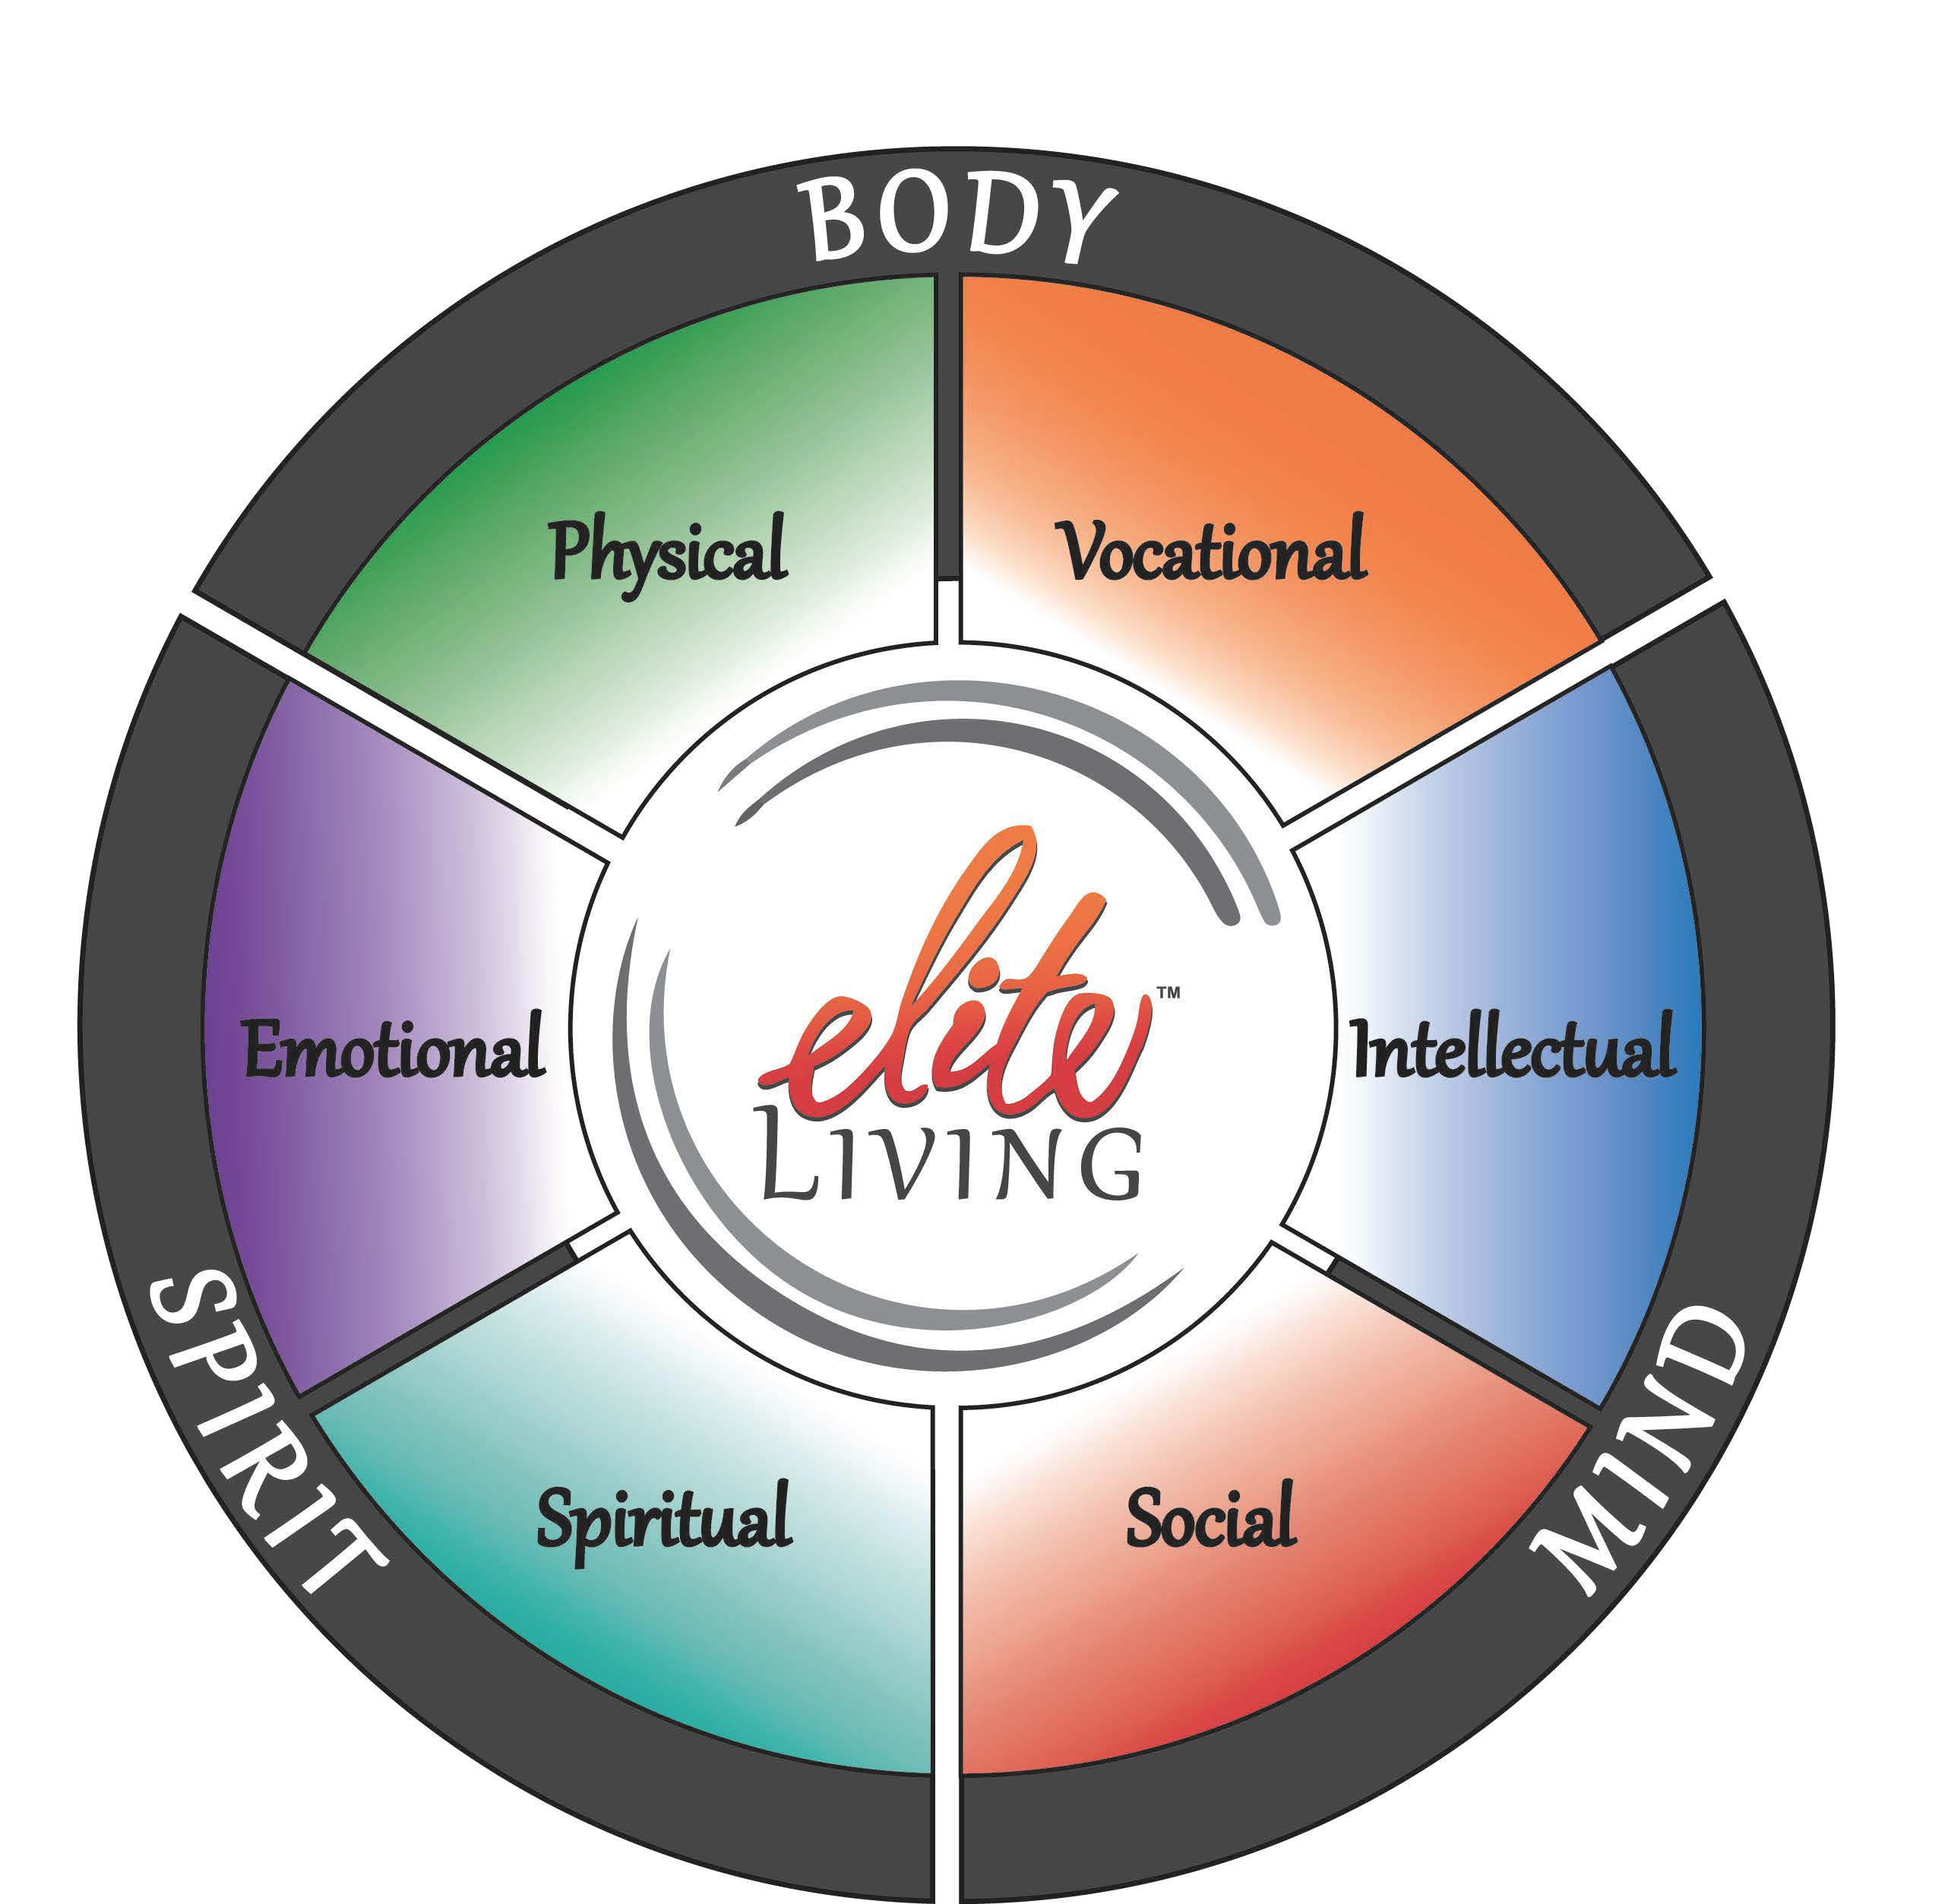 dimensions of wellness Optimum wellness results from the intentional integration of eight fundamental  dimensions of  become familiar with the wellness dimensions below and try to  take a mindful moment daily, weekly or  5 money strategies for unc students.